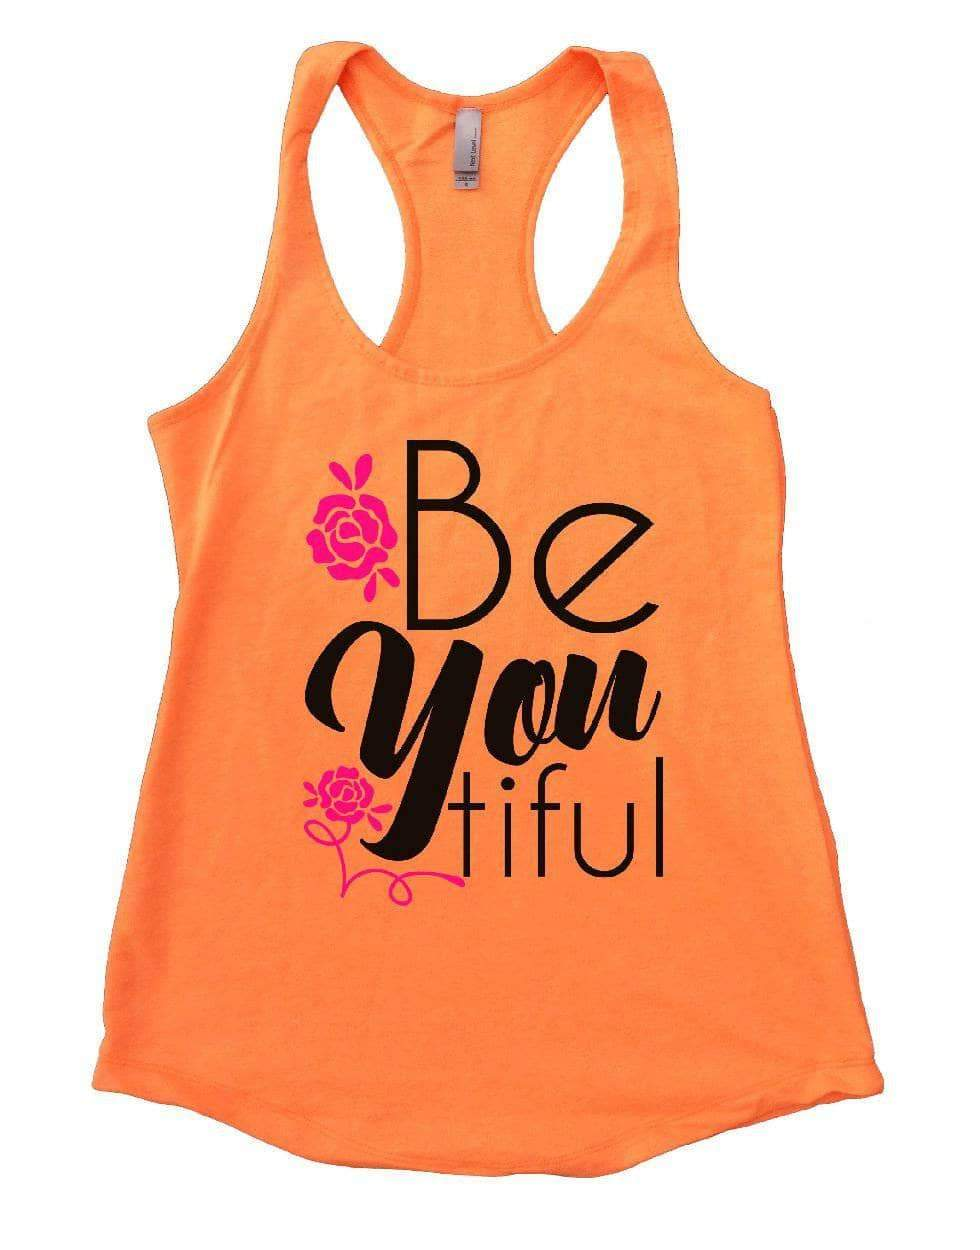 Be You Tiful Womens Workout Tank Top Small Womens Tank Tops Neon Orange